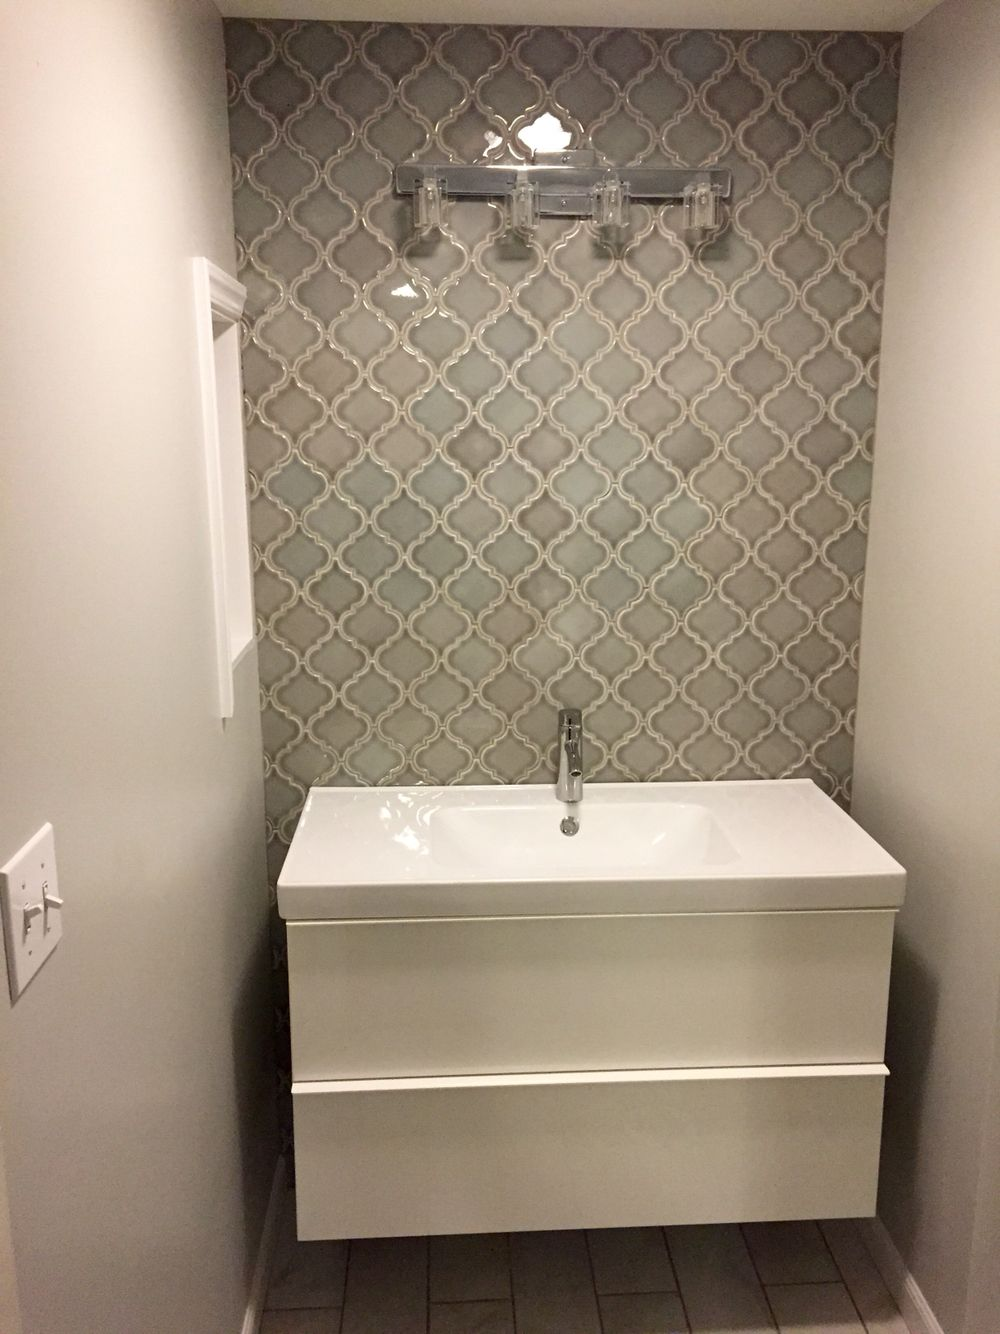 Home Depot Dove Gray Arabesque Tile Bathroom Wall. Part 98